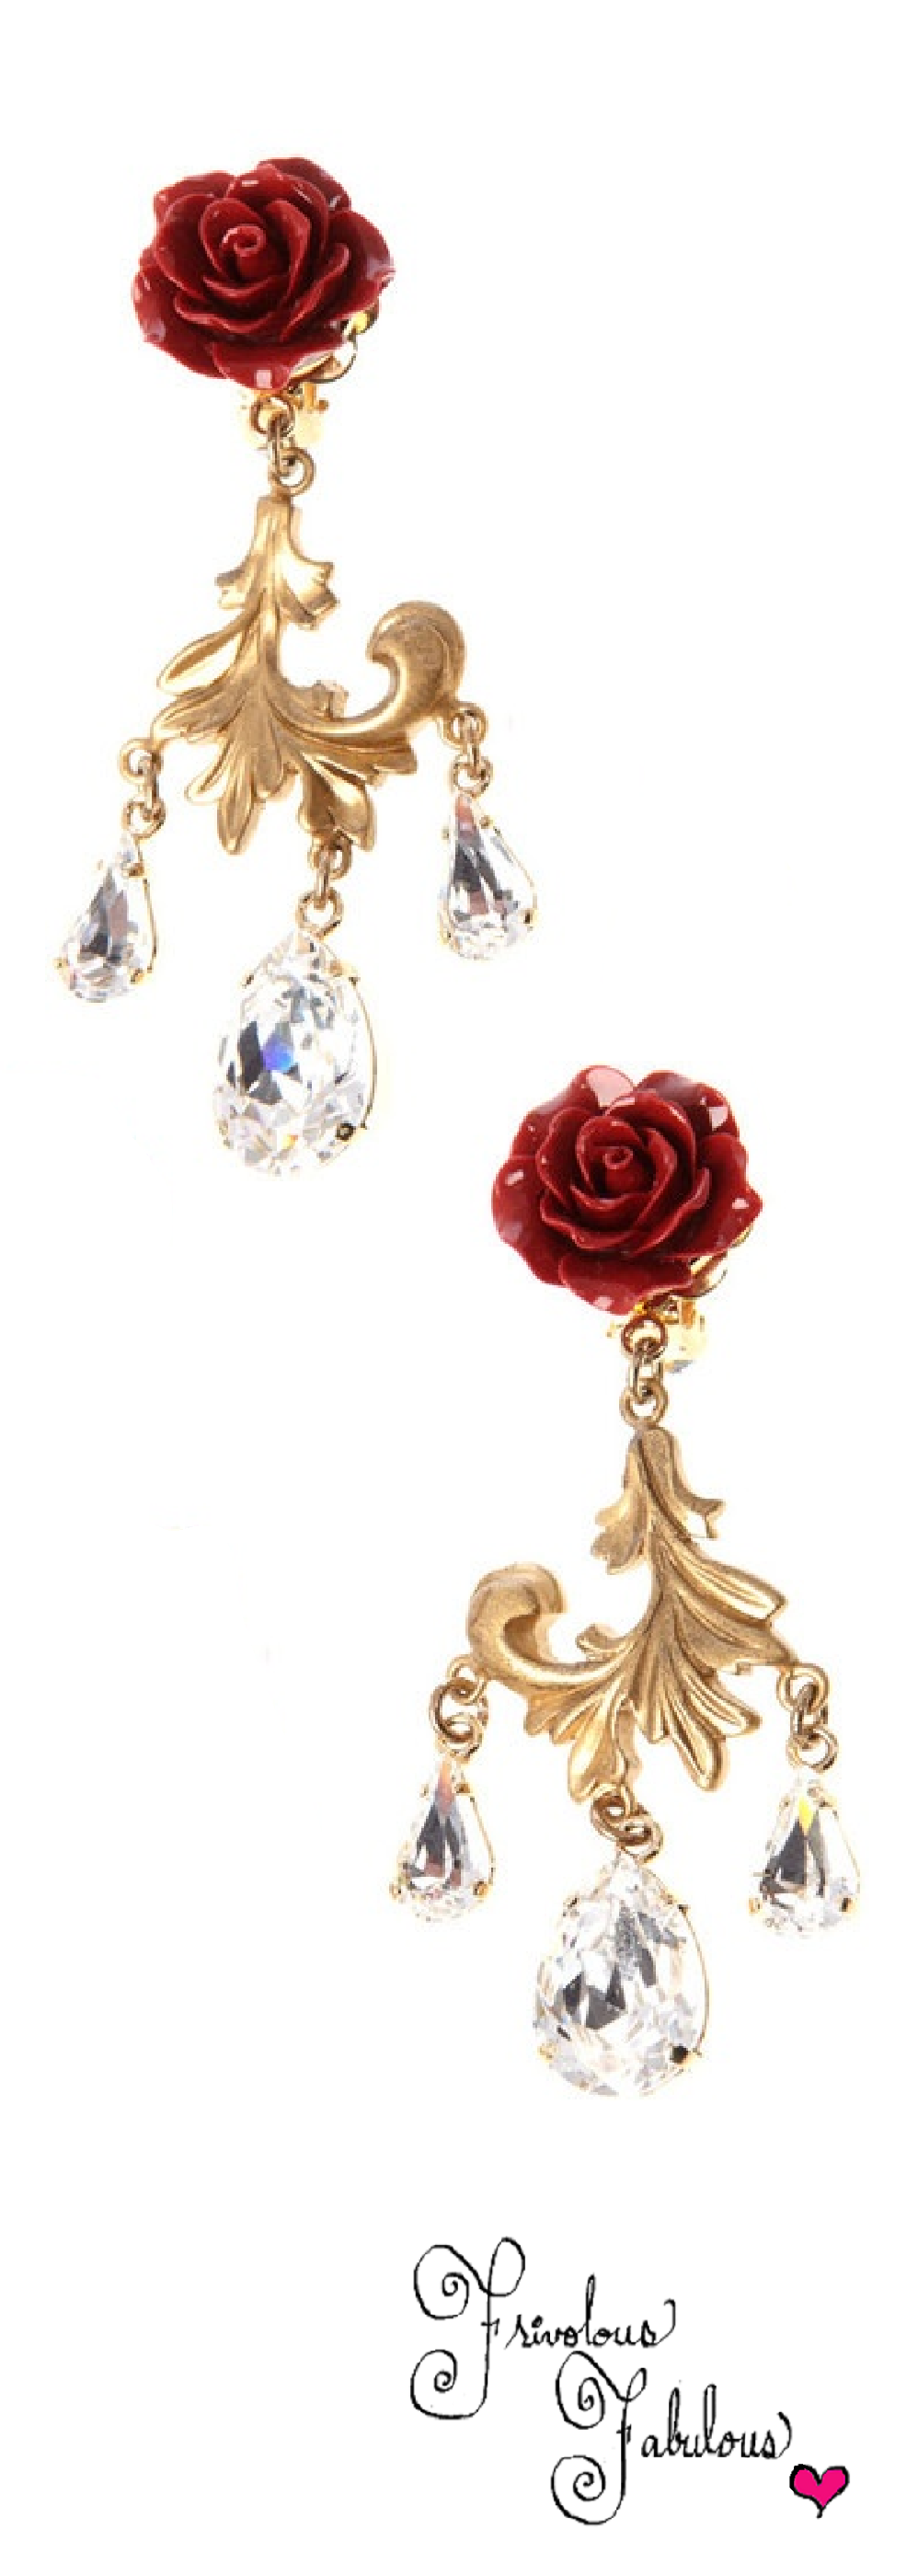 Dolce & Gabbana rose and crystal drop earrings - Red 0GUWNplcpo